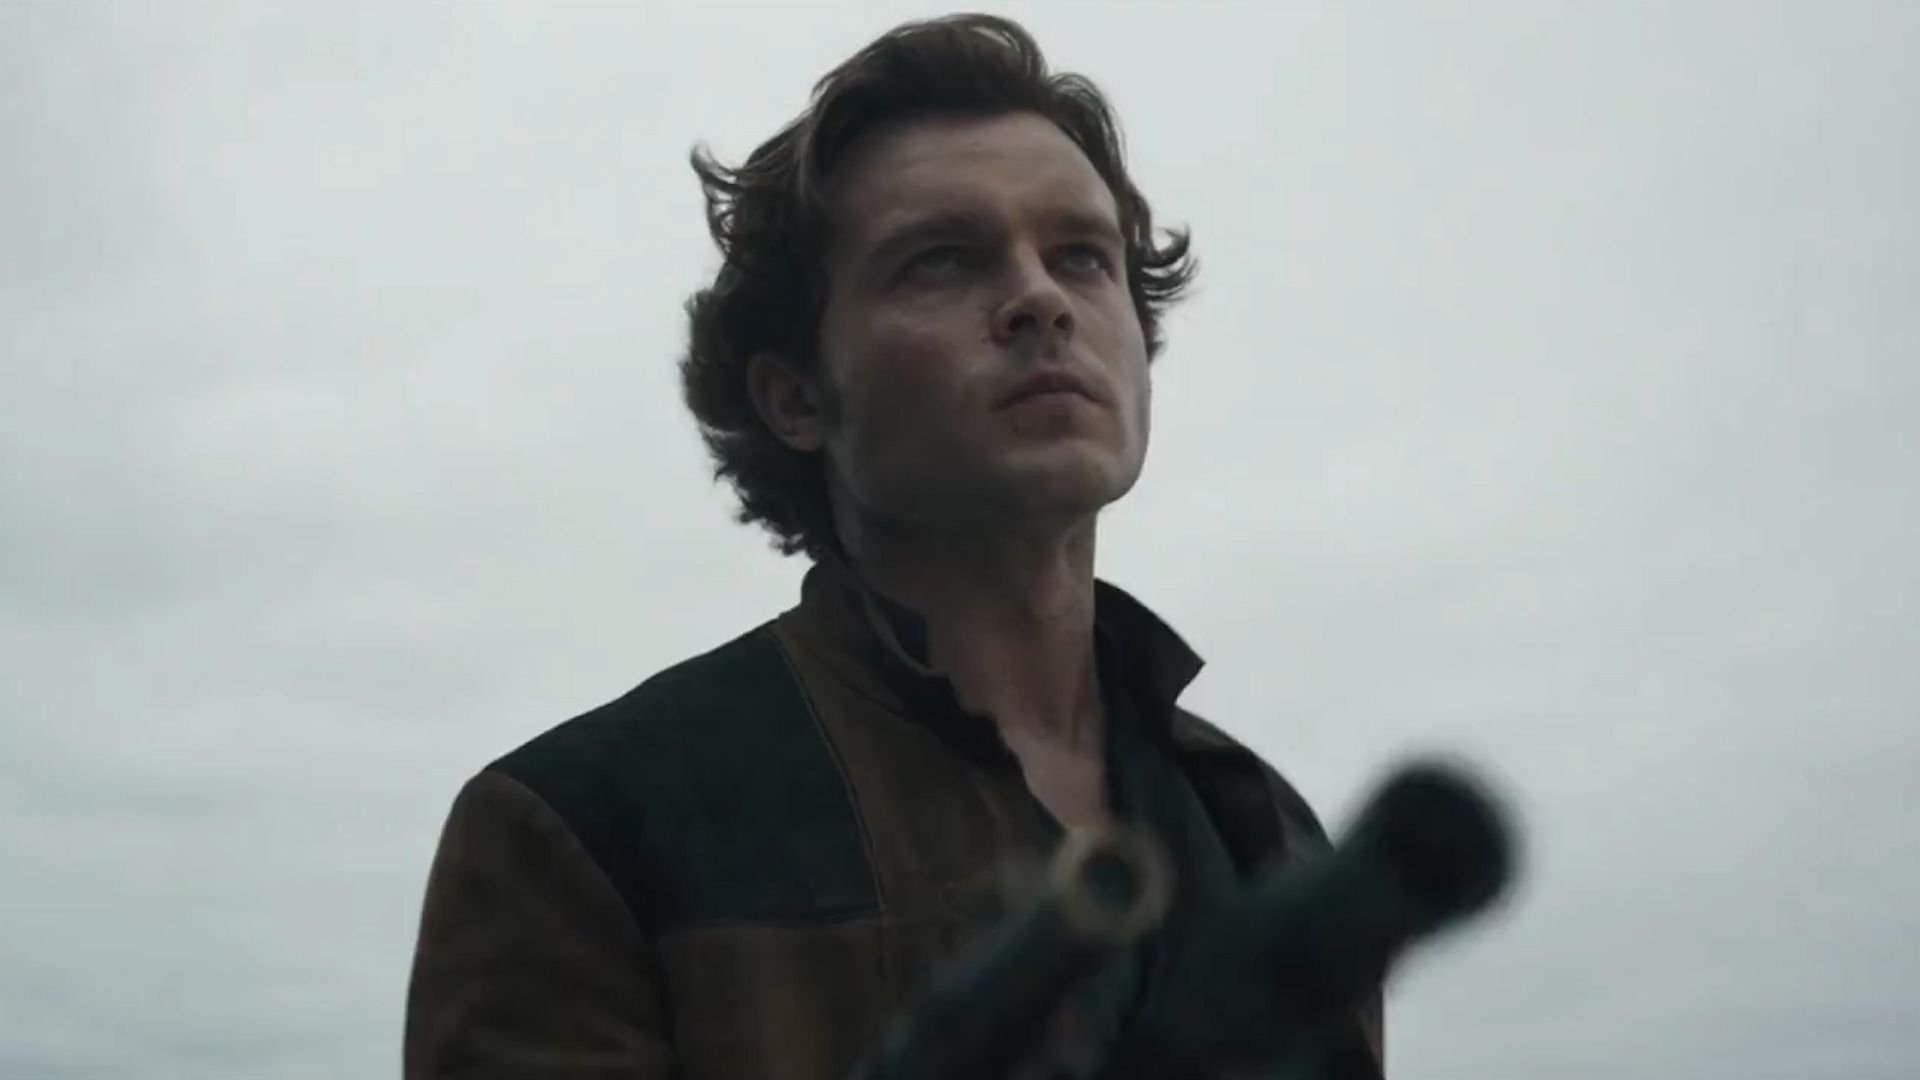 Will Disney Make a Solo 2? It's Highly Unlikely and Would Make Little Sense